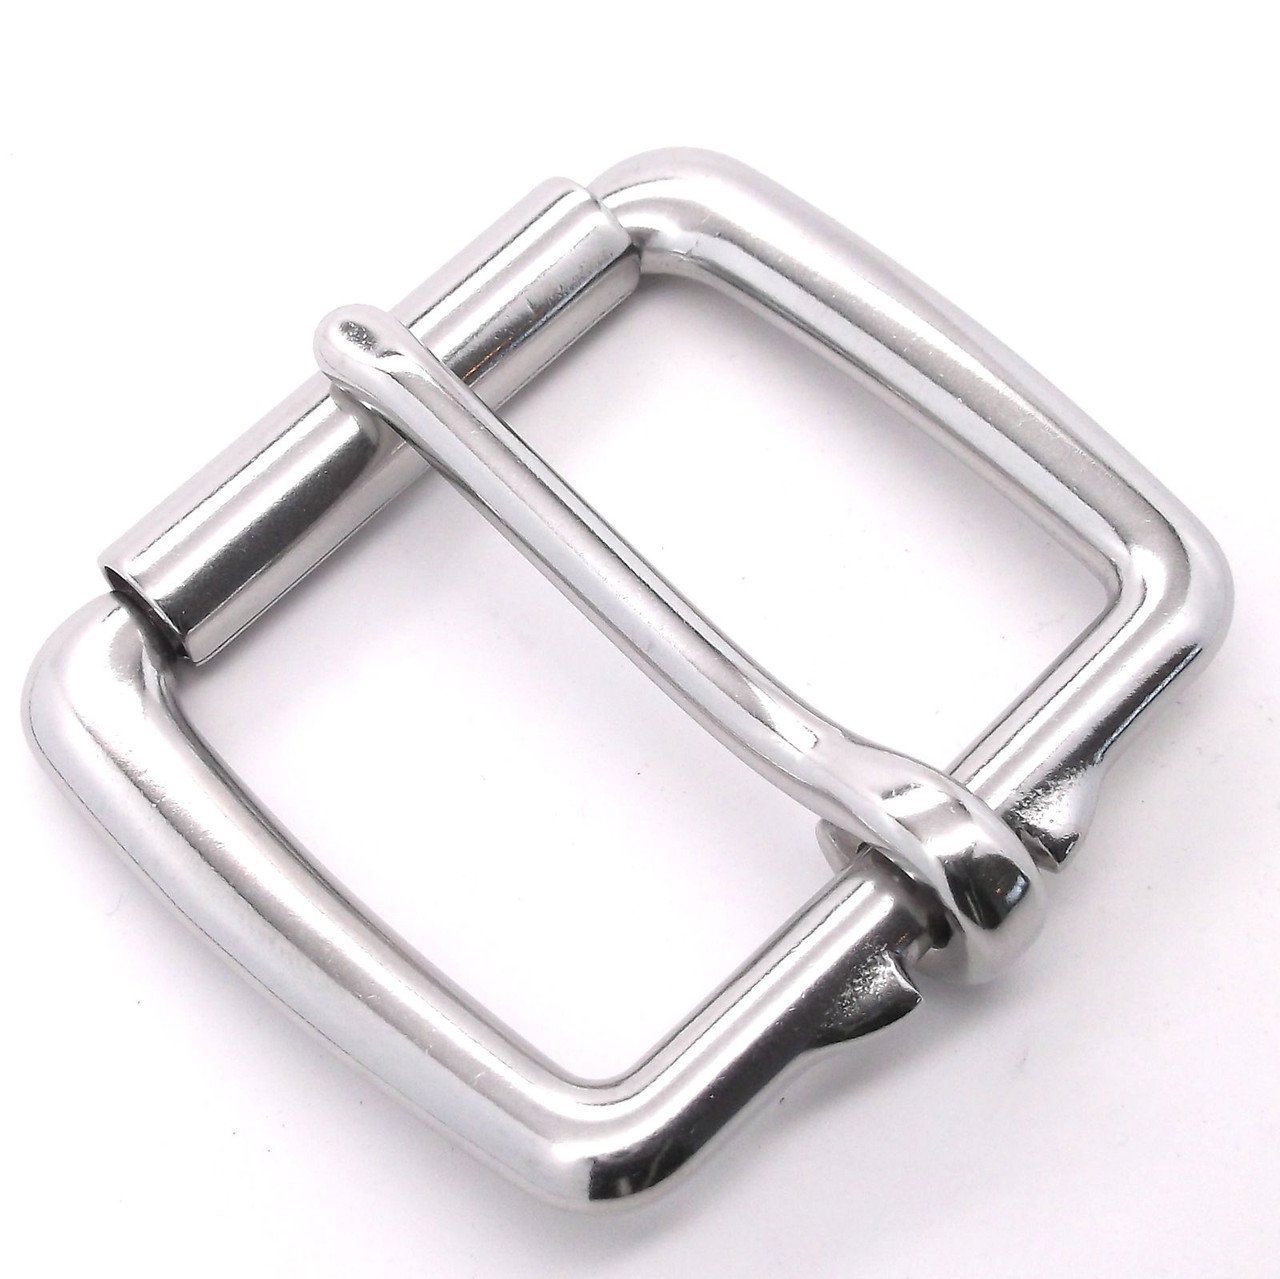 Tandy Leather Stainless Steel Heavy Duty Roller Buckle for Various purposes